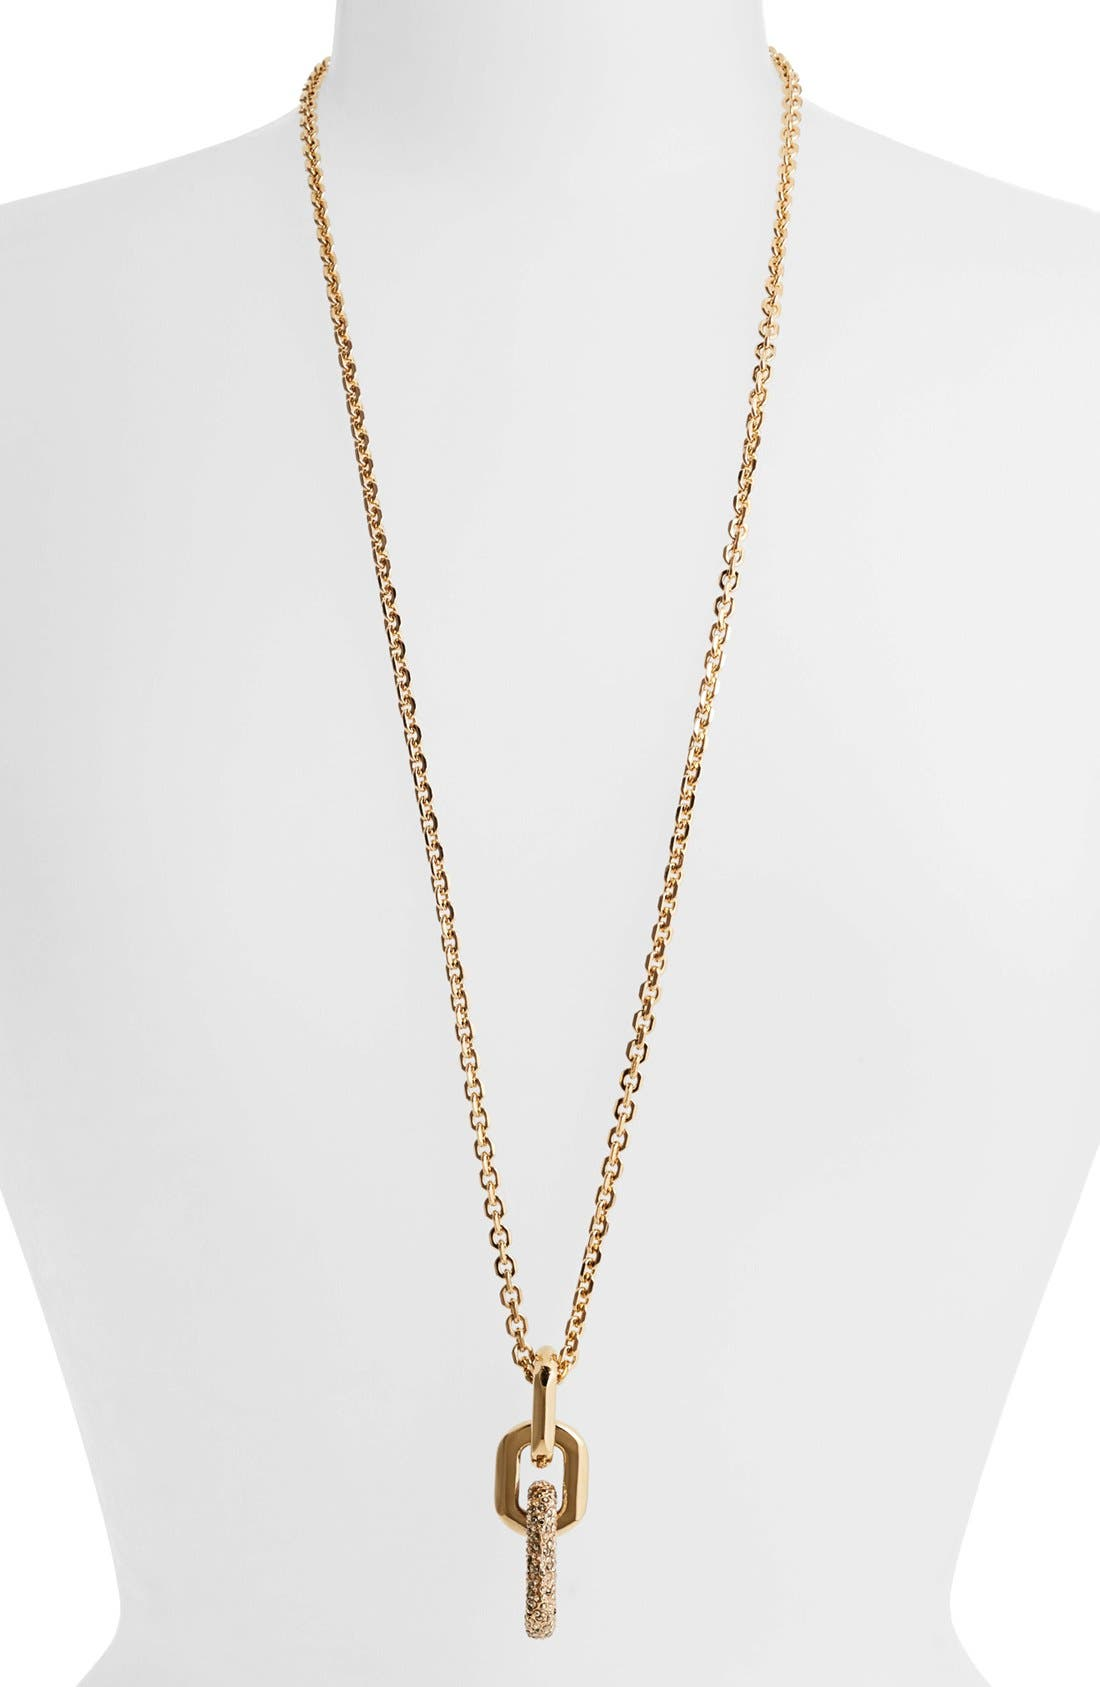 Alternate Image 1 Selected - St. John Collection Pavé Crystal Chain Link Pendant Necklace